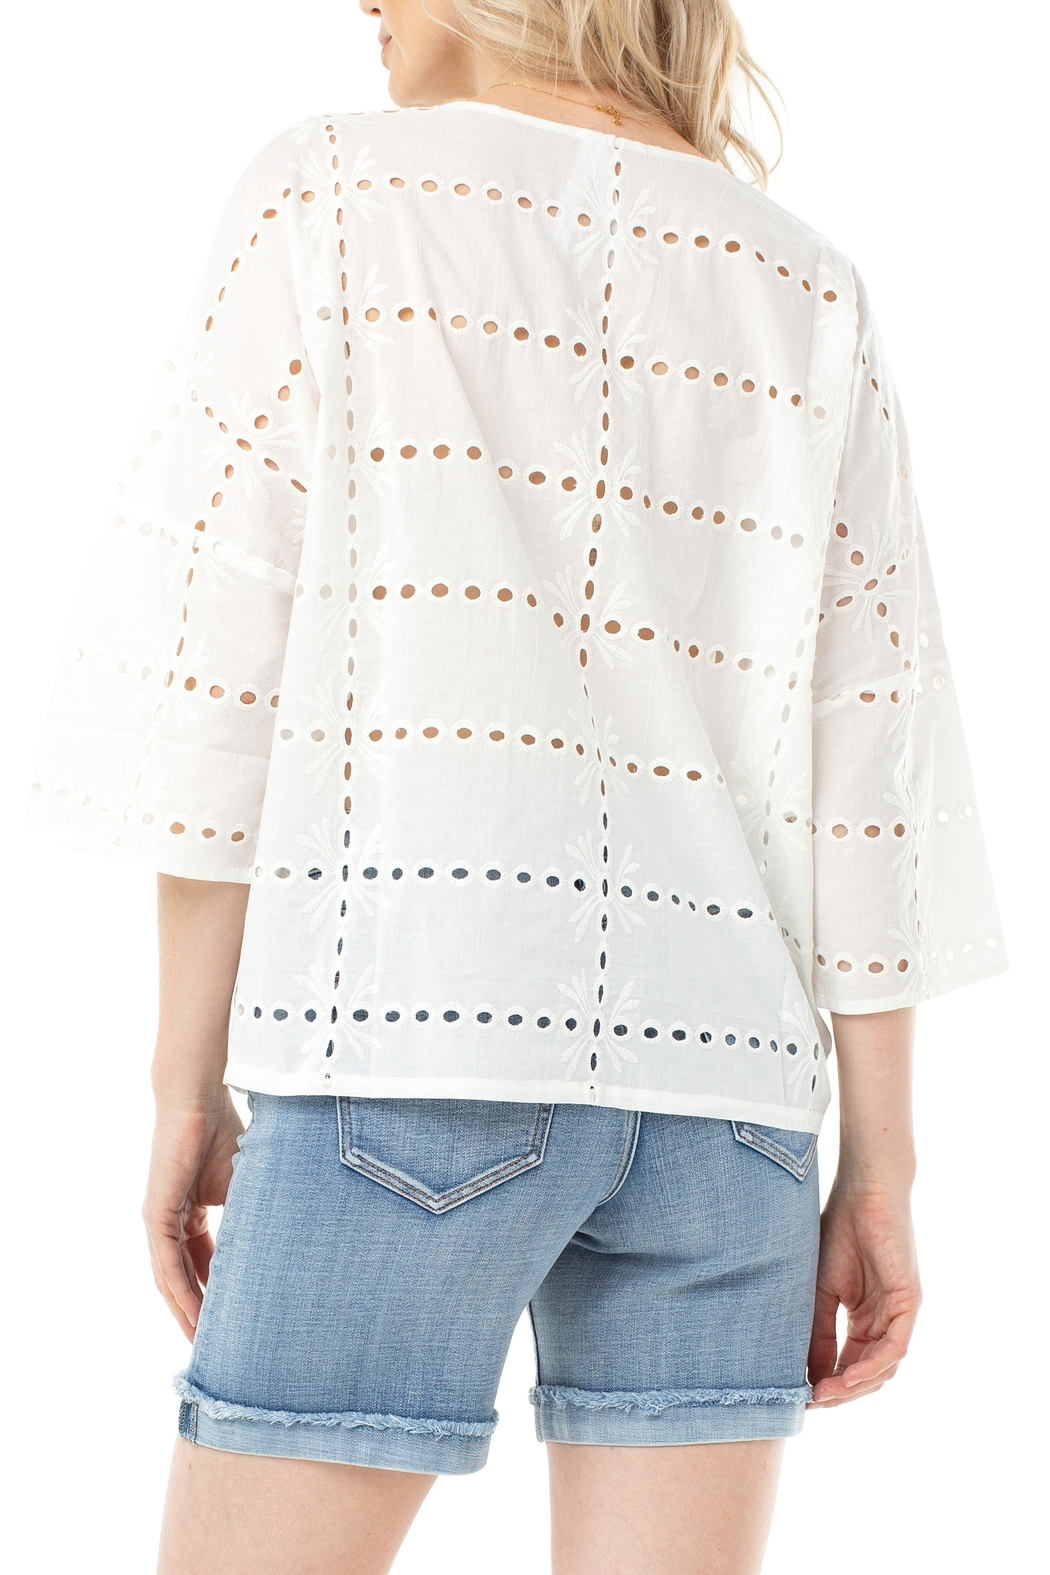 Liverpool  White Eyelet Dolman Sleeve Top 1253 - Front Full Image